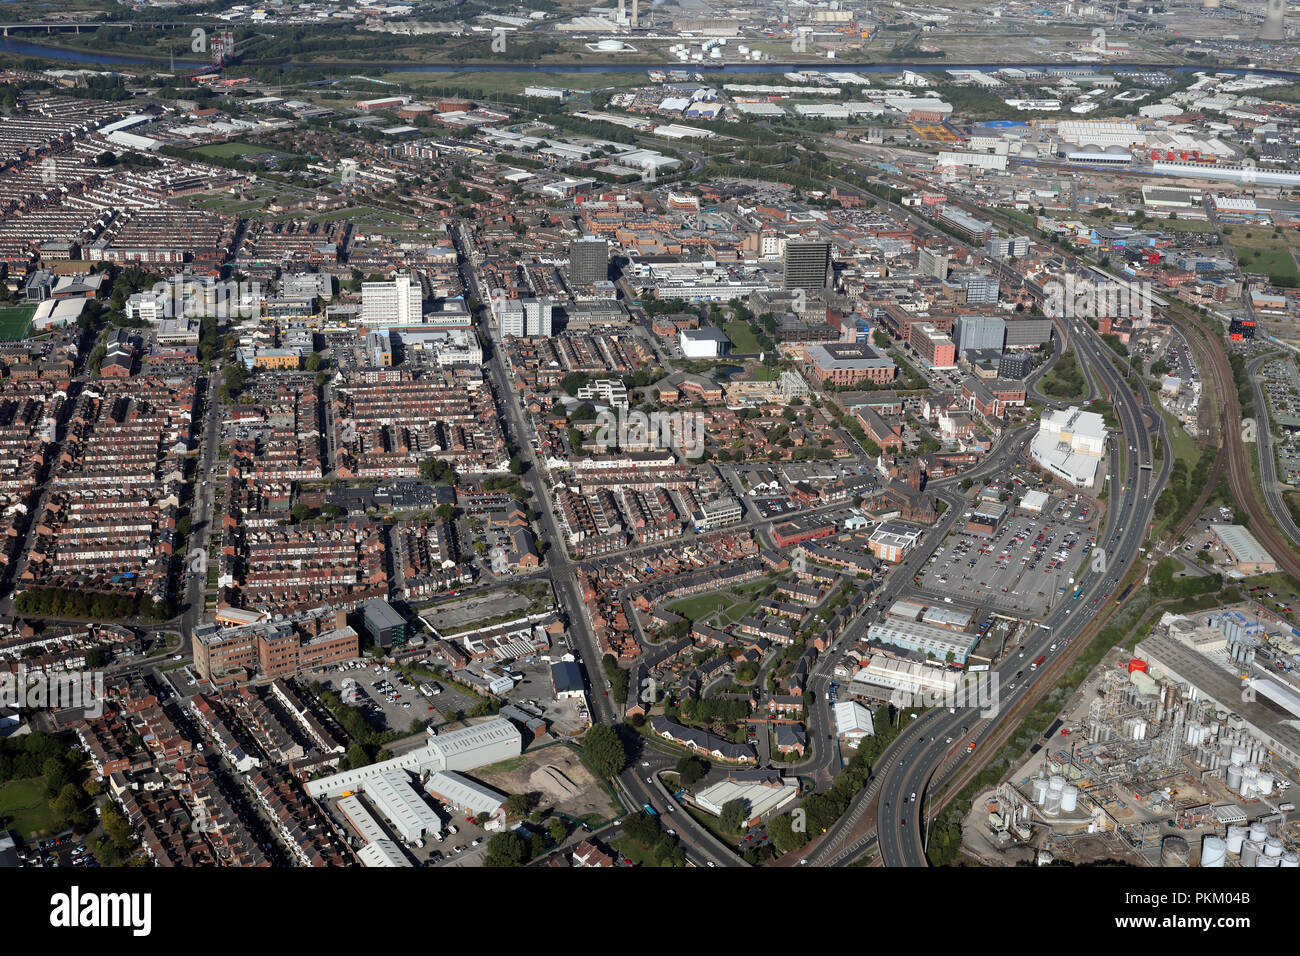 aerial view of Middlesbrough - Stock Image